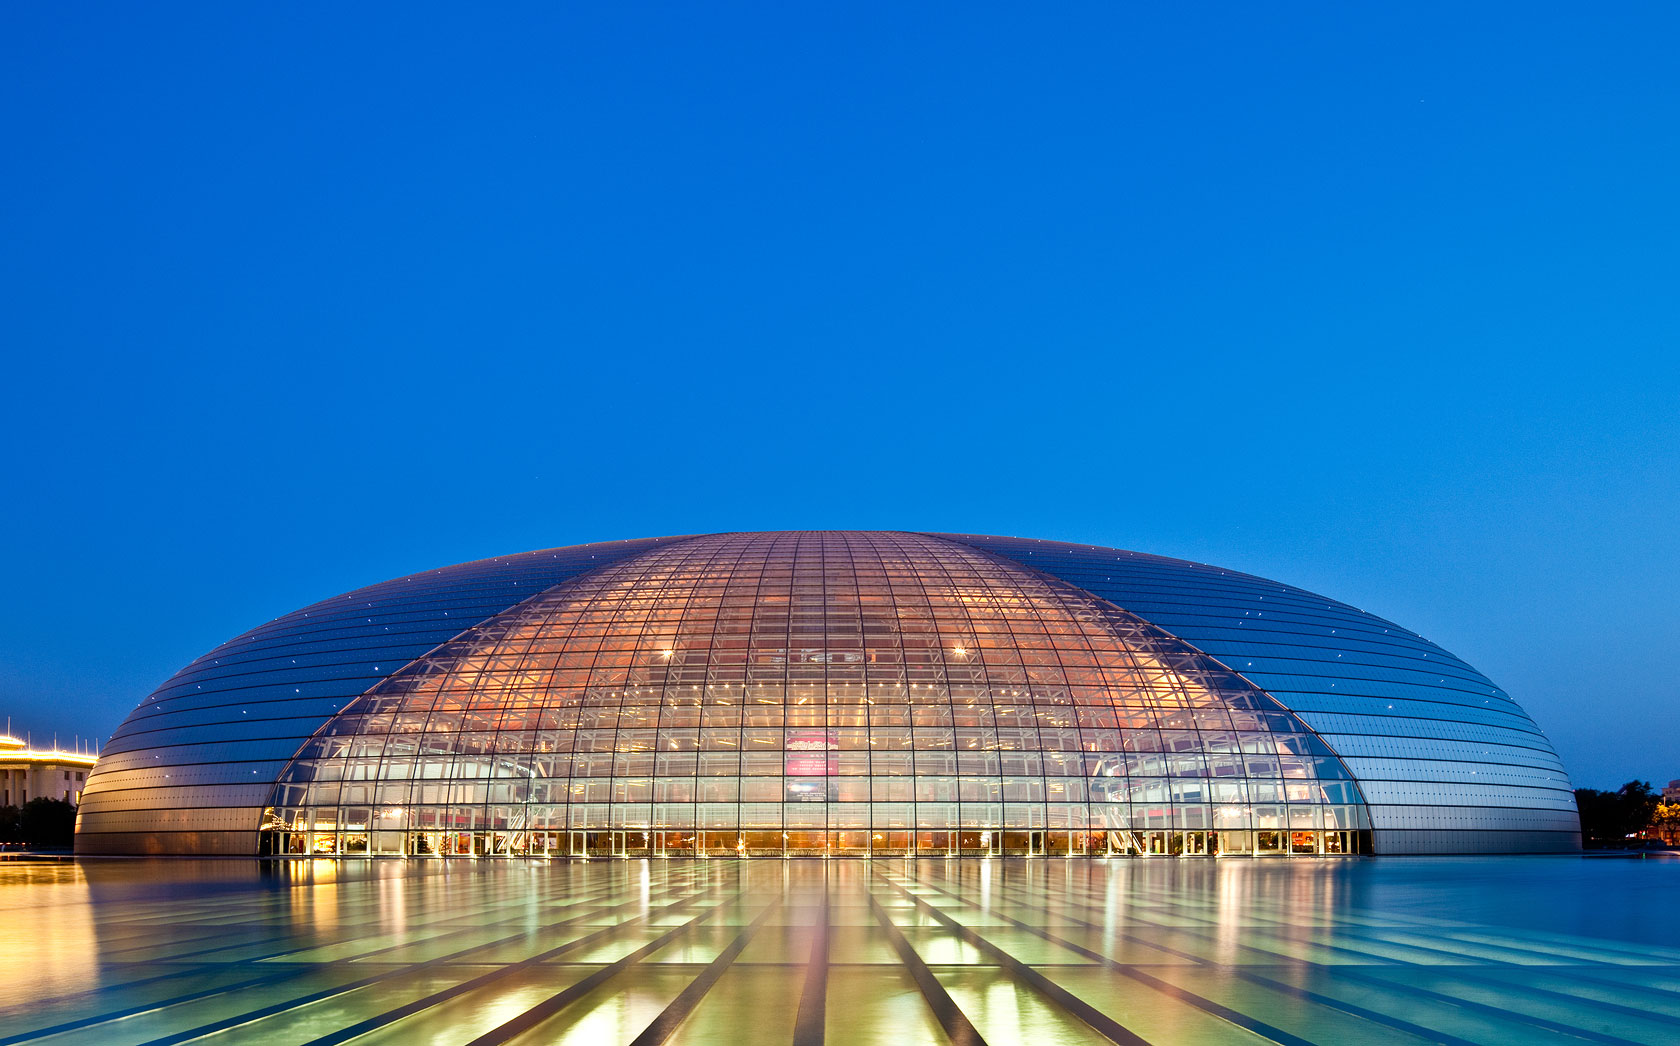 Terry Wier Photography,  Natl Center Performing Arts, China 01